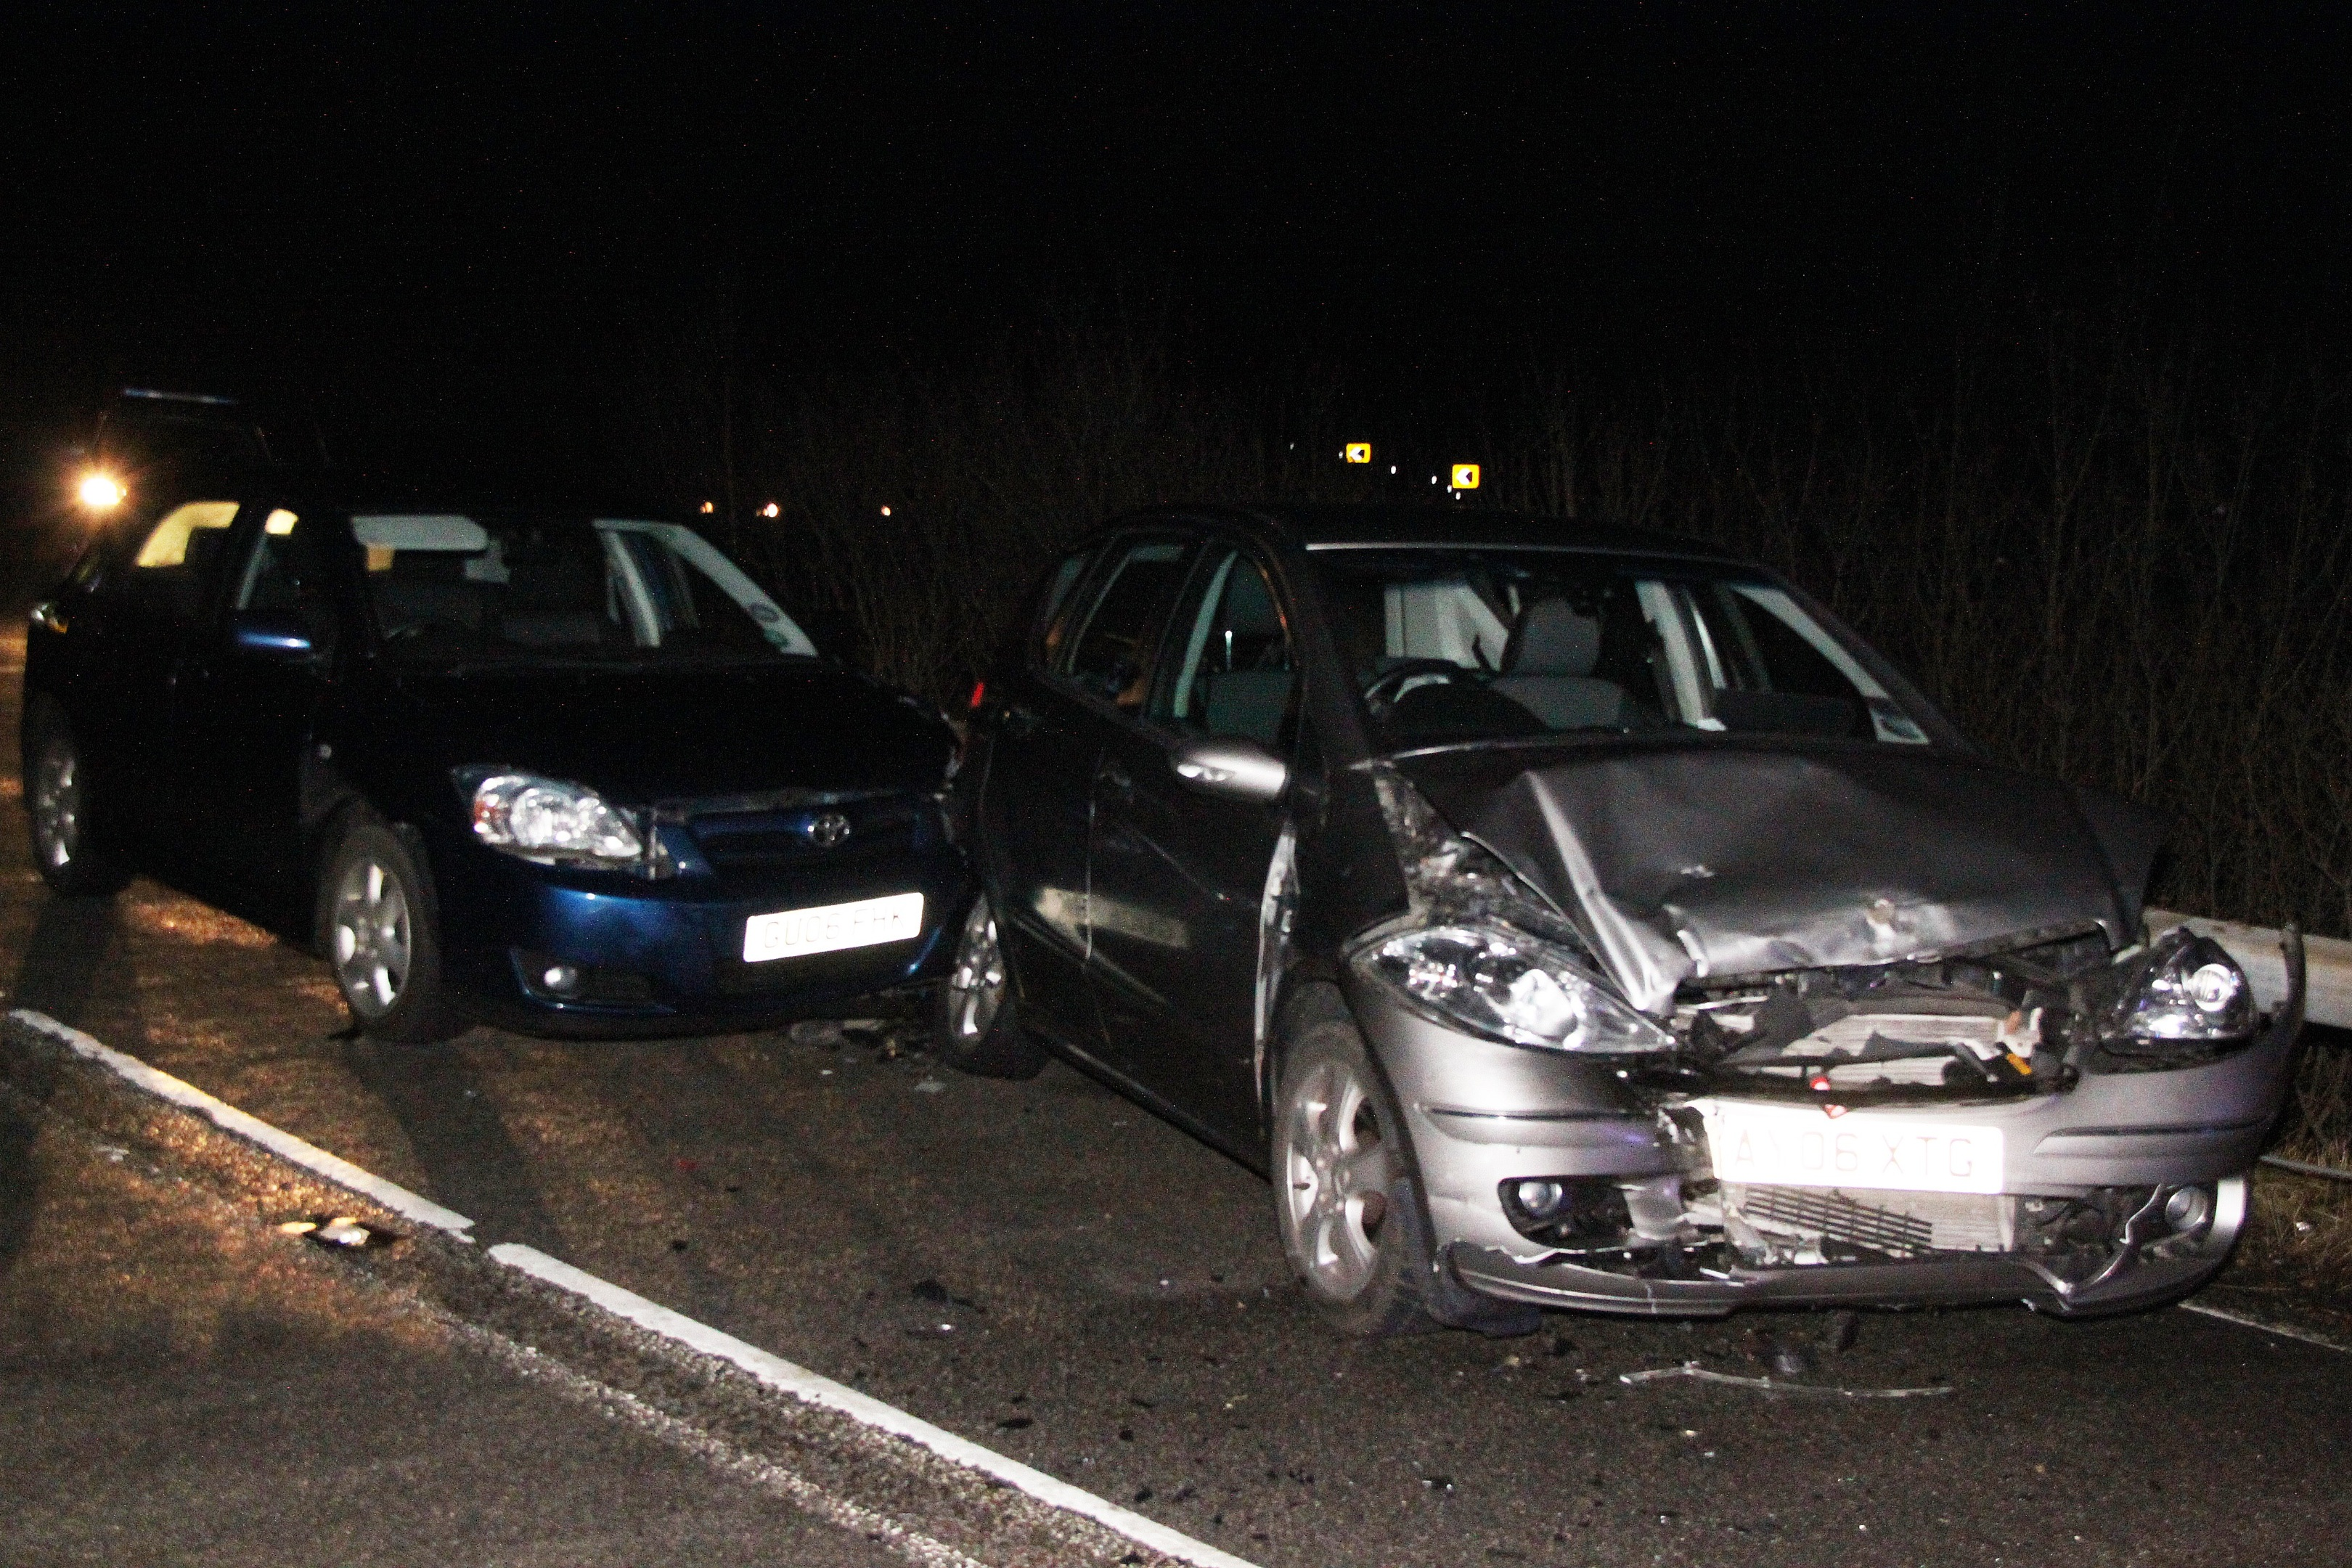 Two cars were involved in the accident but the drivers involved only sustained minor injuries